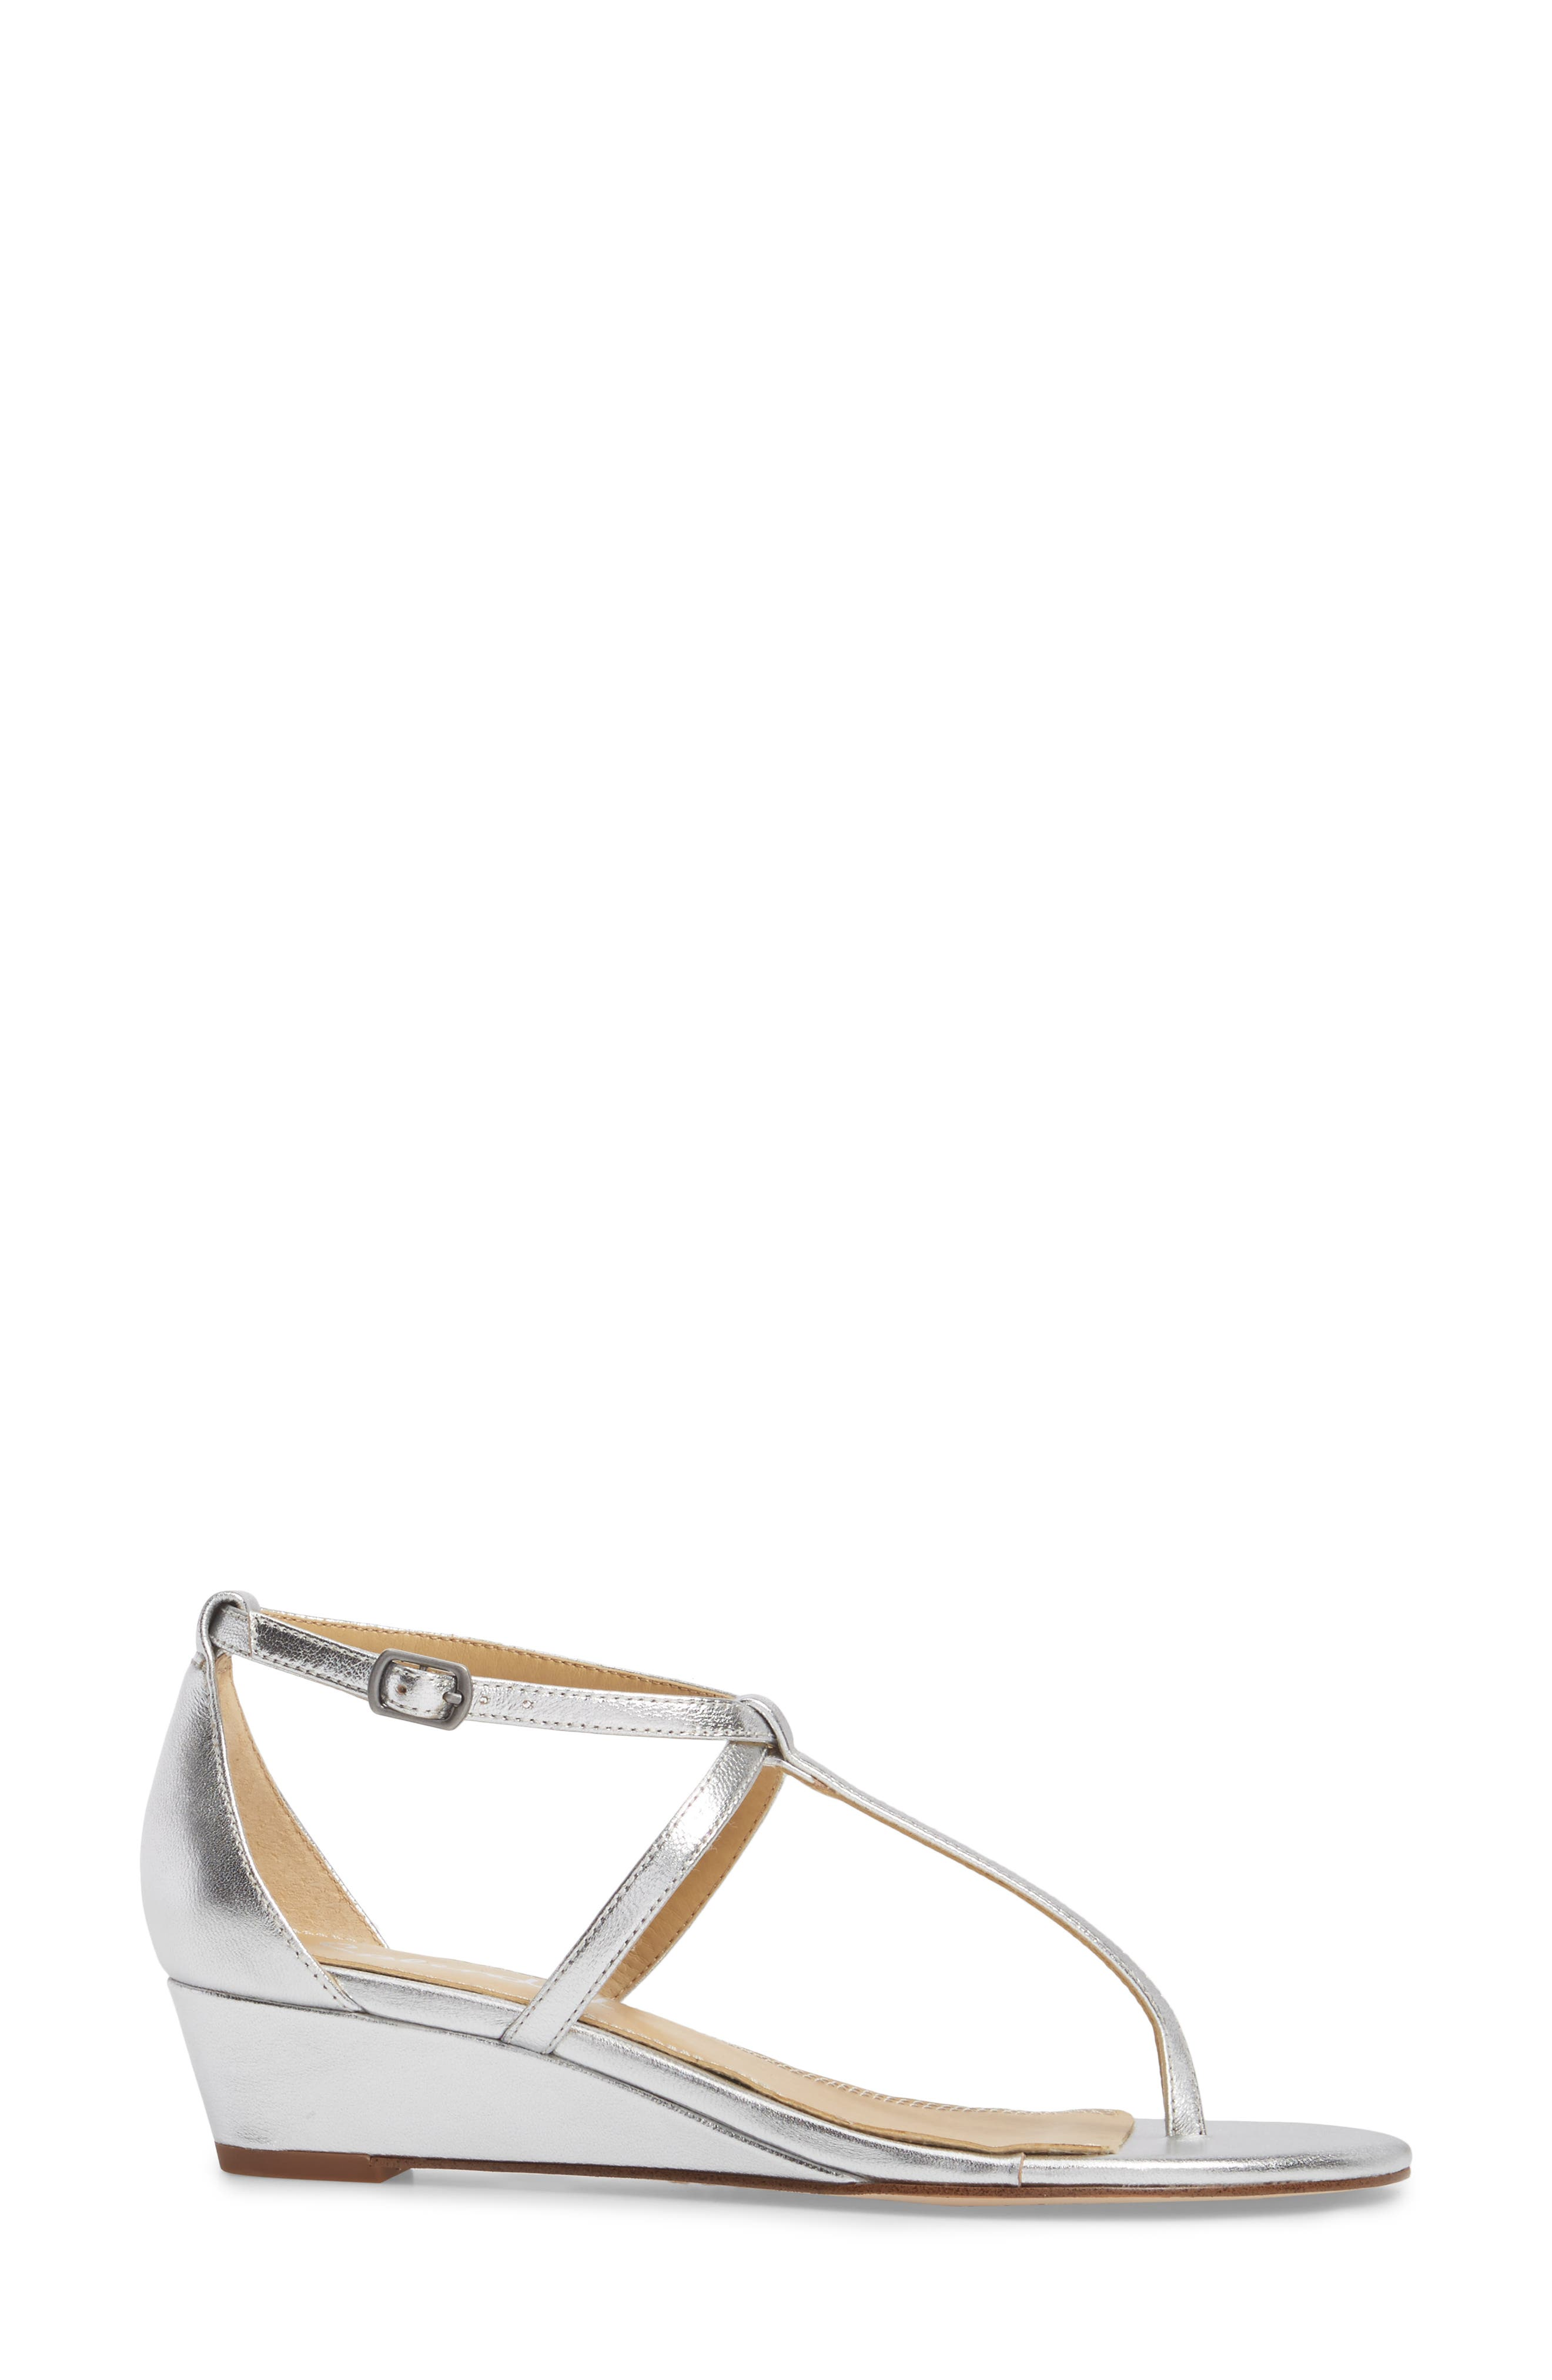 Bryce T-Strap Wedge Sandal,                             Alternate thumbnail 3, color,                             Silver Metallic Leather